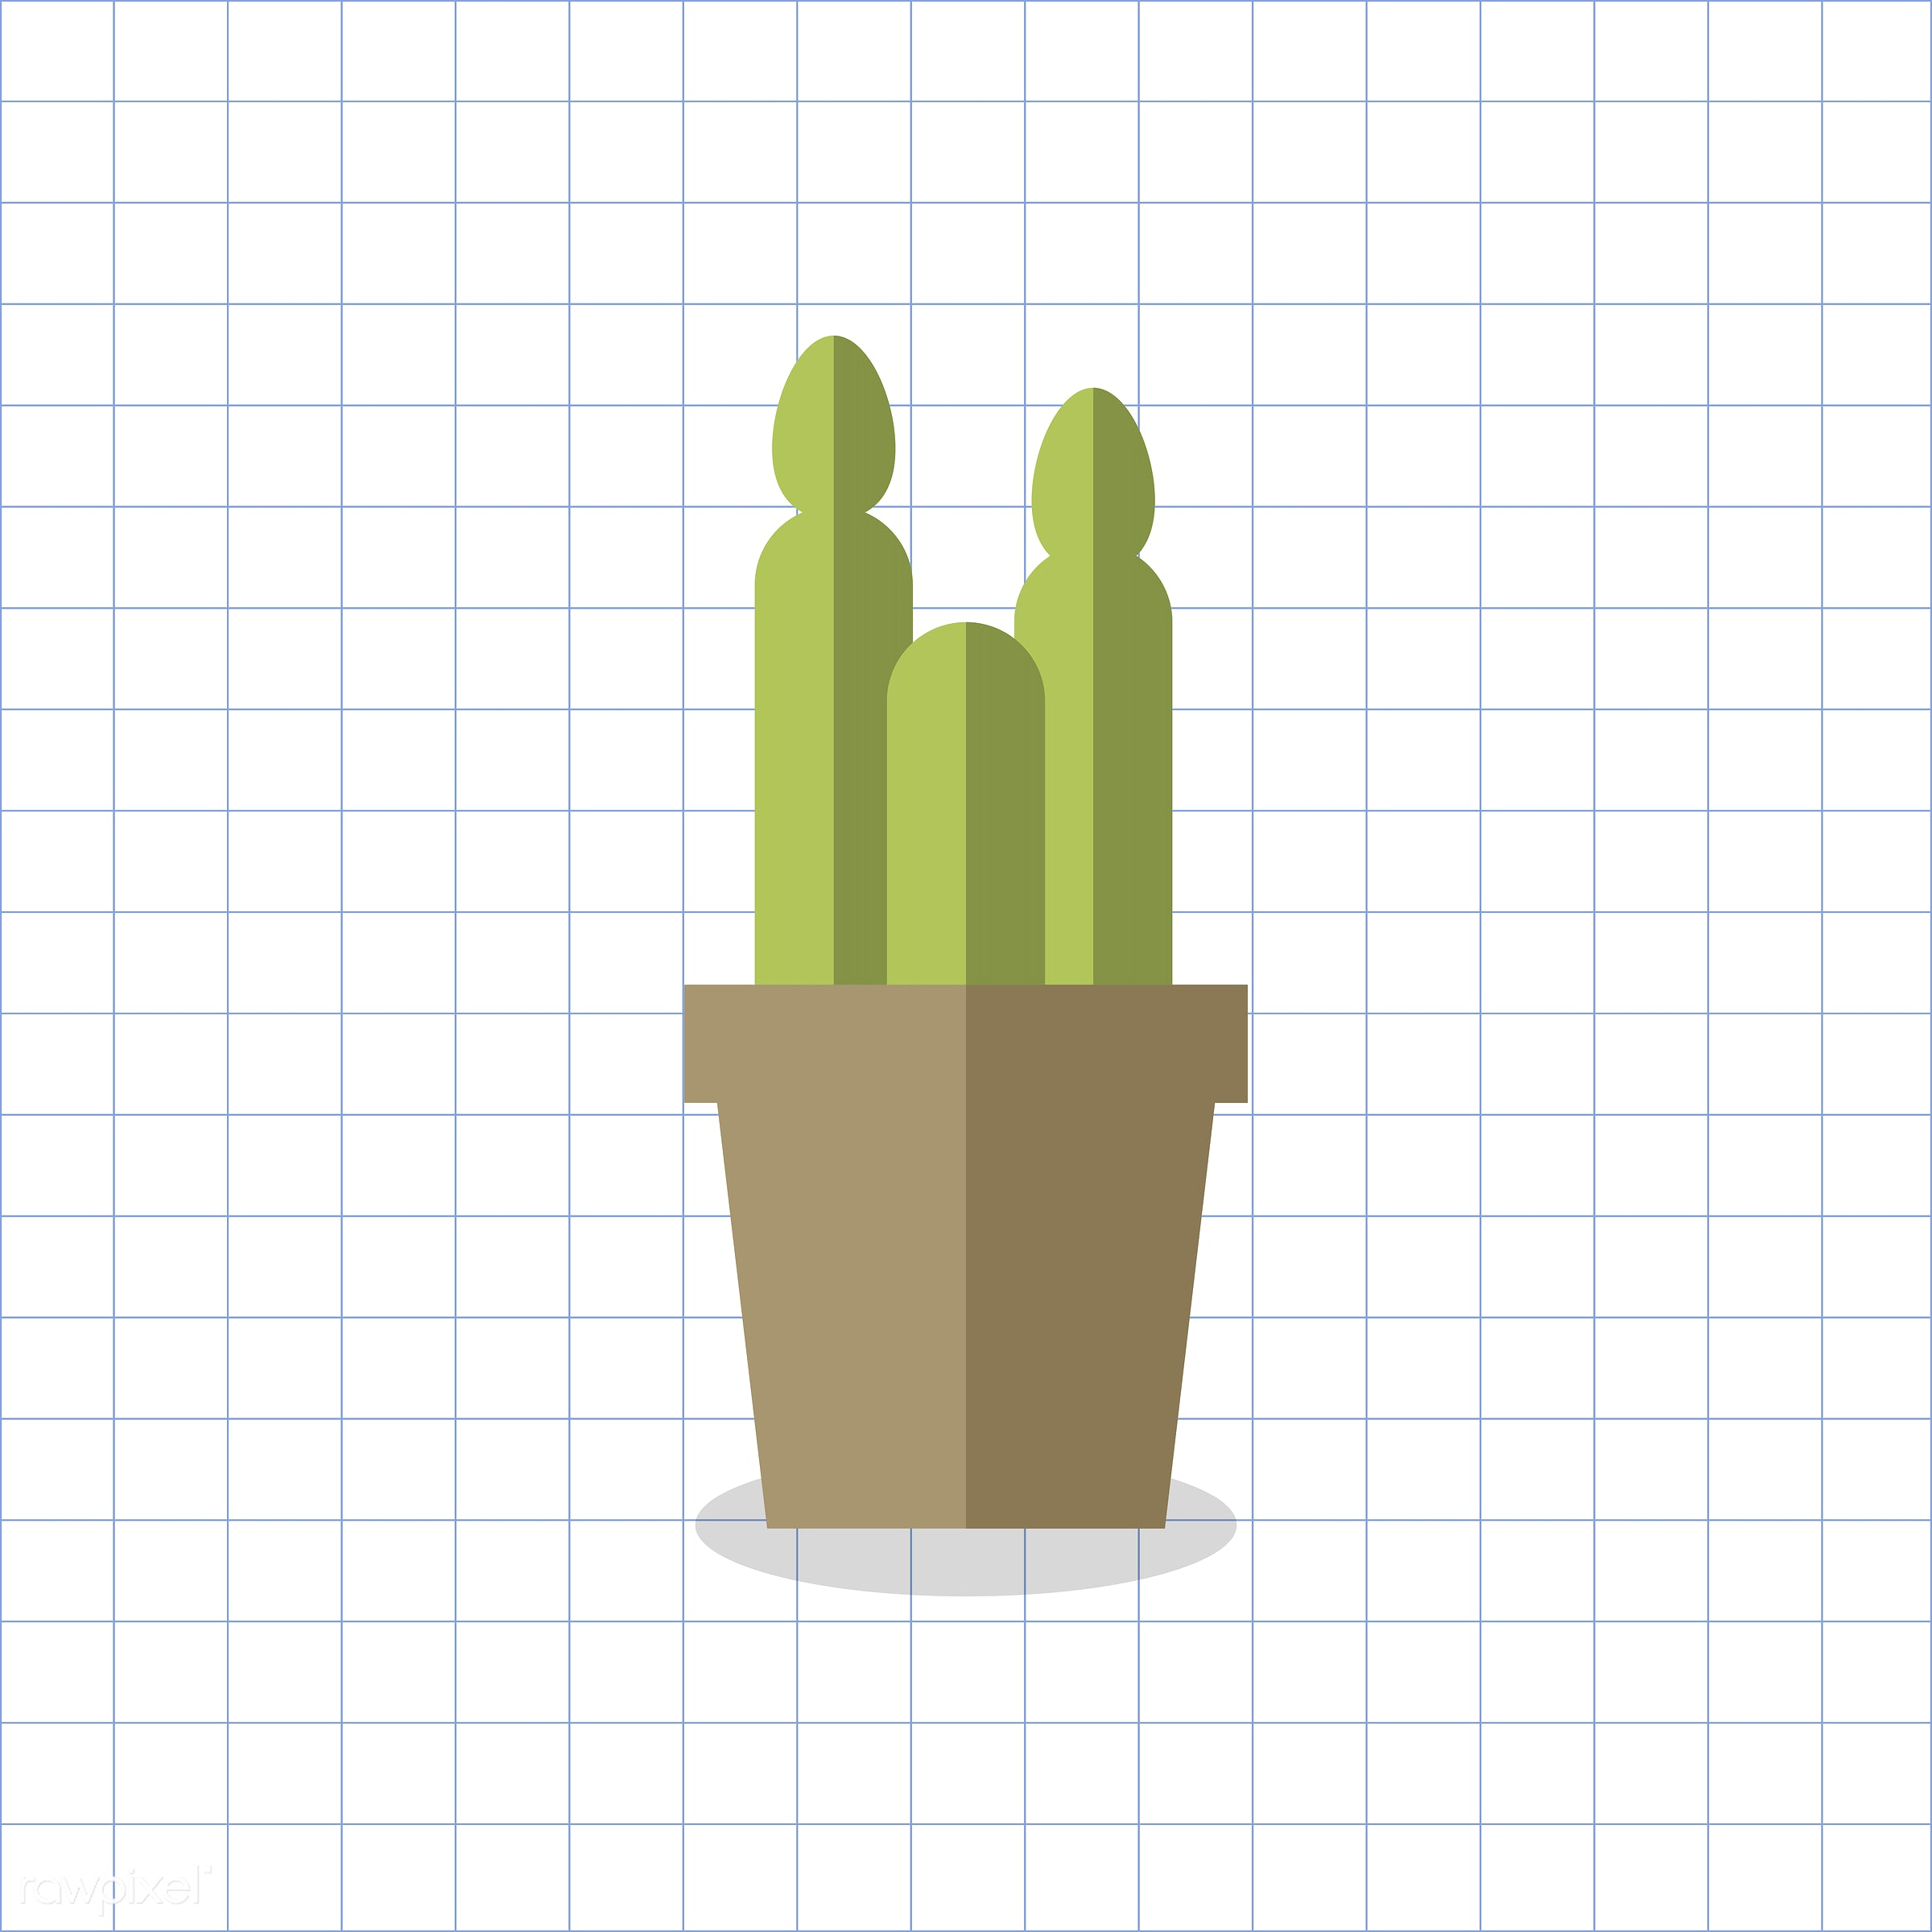 vector, graphic, illustration, icon, symbol, colorful, cute, plant, tree, nature, cactus, cacti, planted, pot